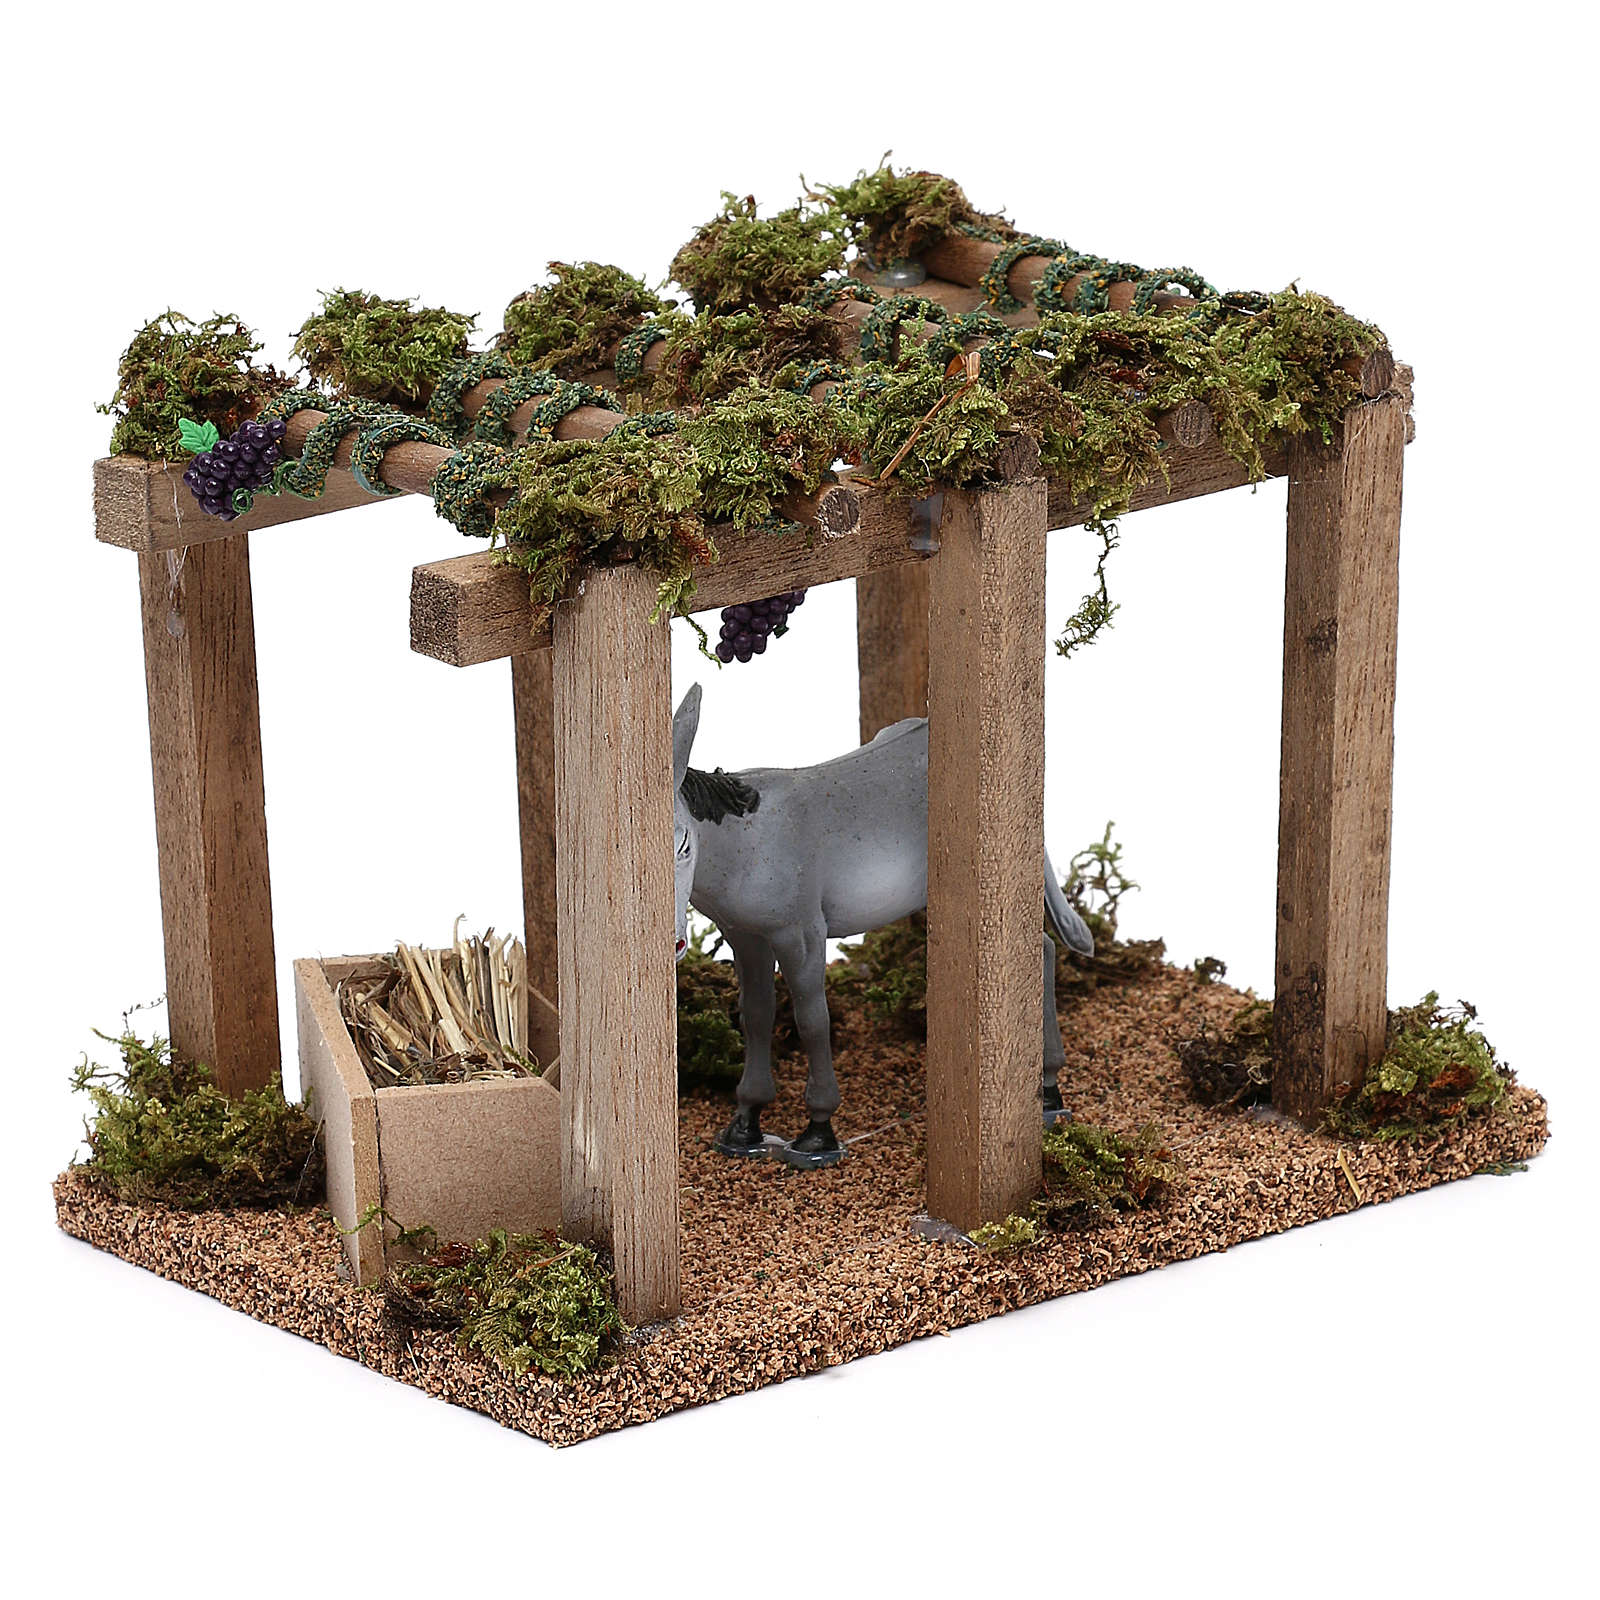 Donkey under the porch with grapes for Nativity scene 10 cm 3